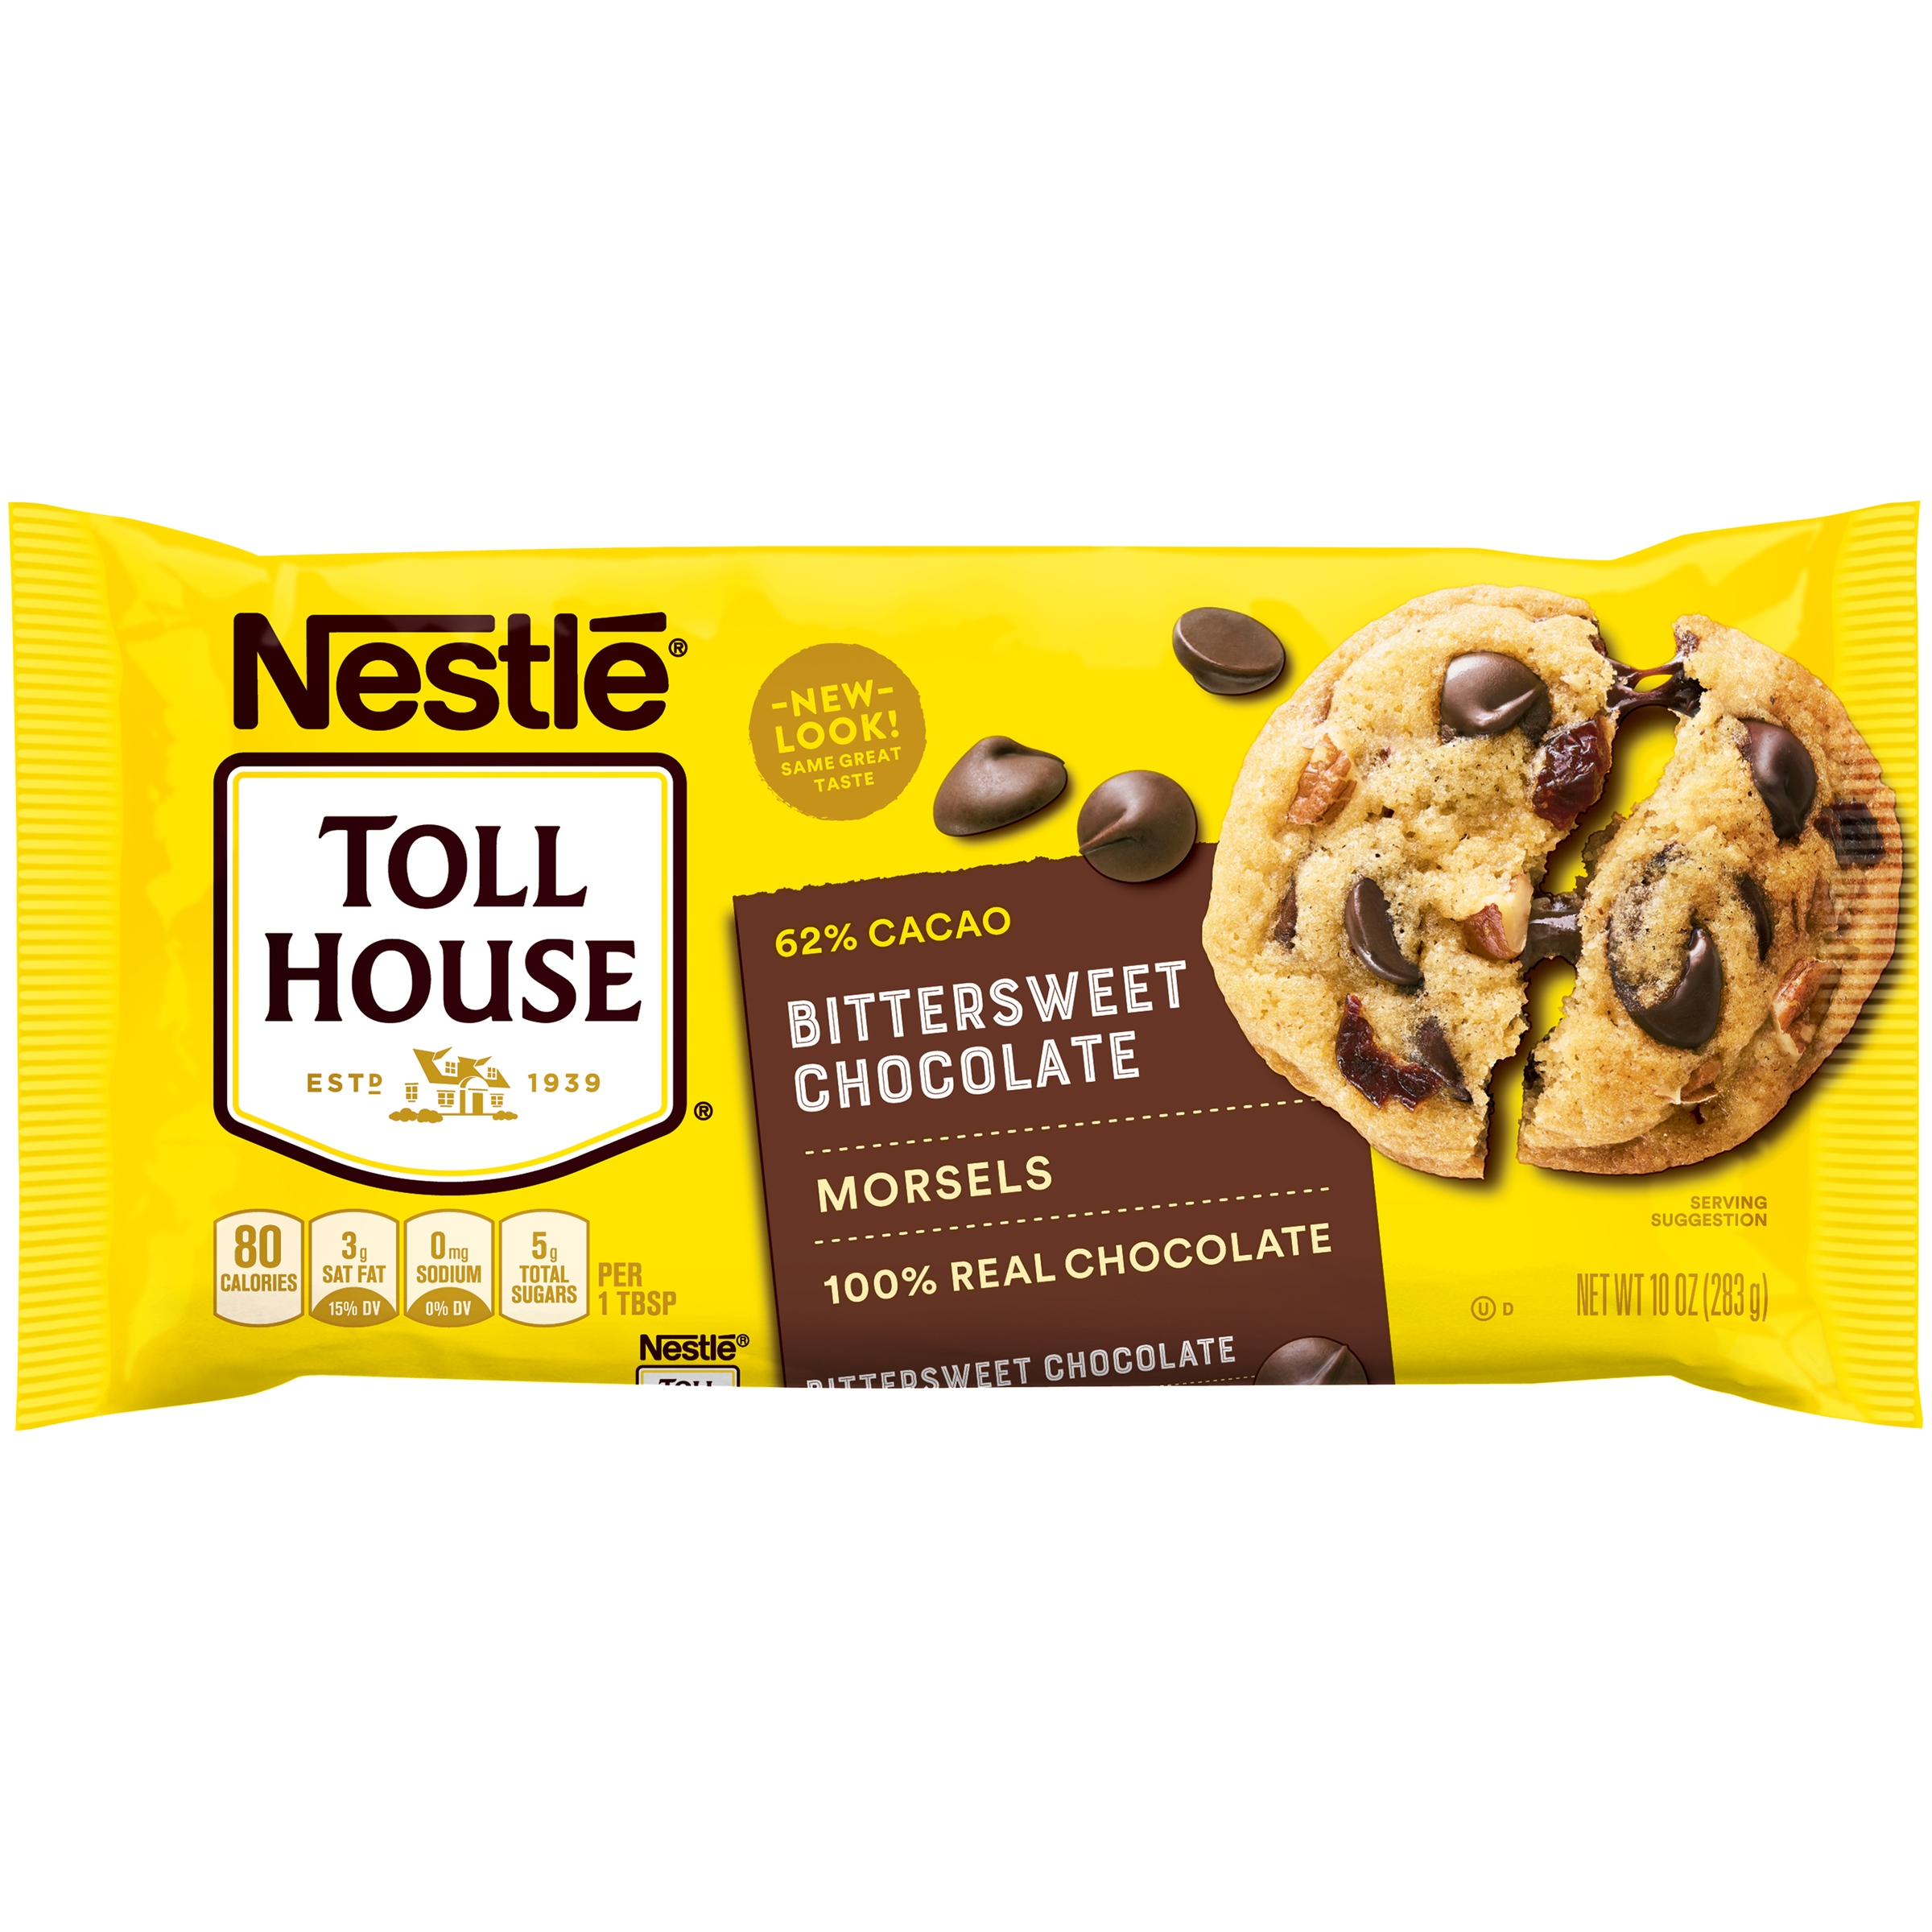 (2 Pack) NESTLE TOLL HOUSE 62% Cacao Bittersweet Chocolate Morsels 10 oz. Bag